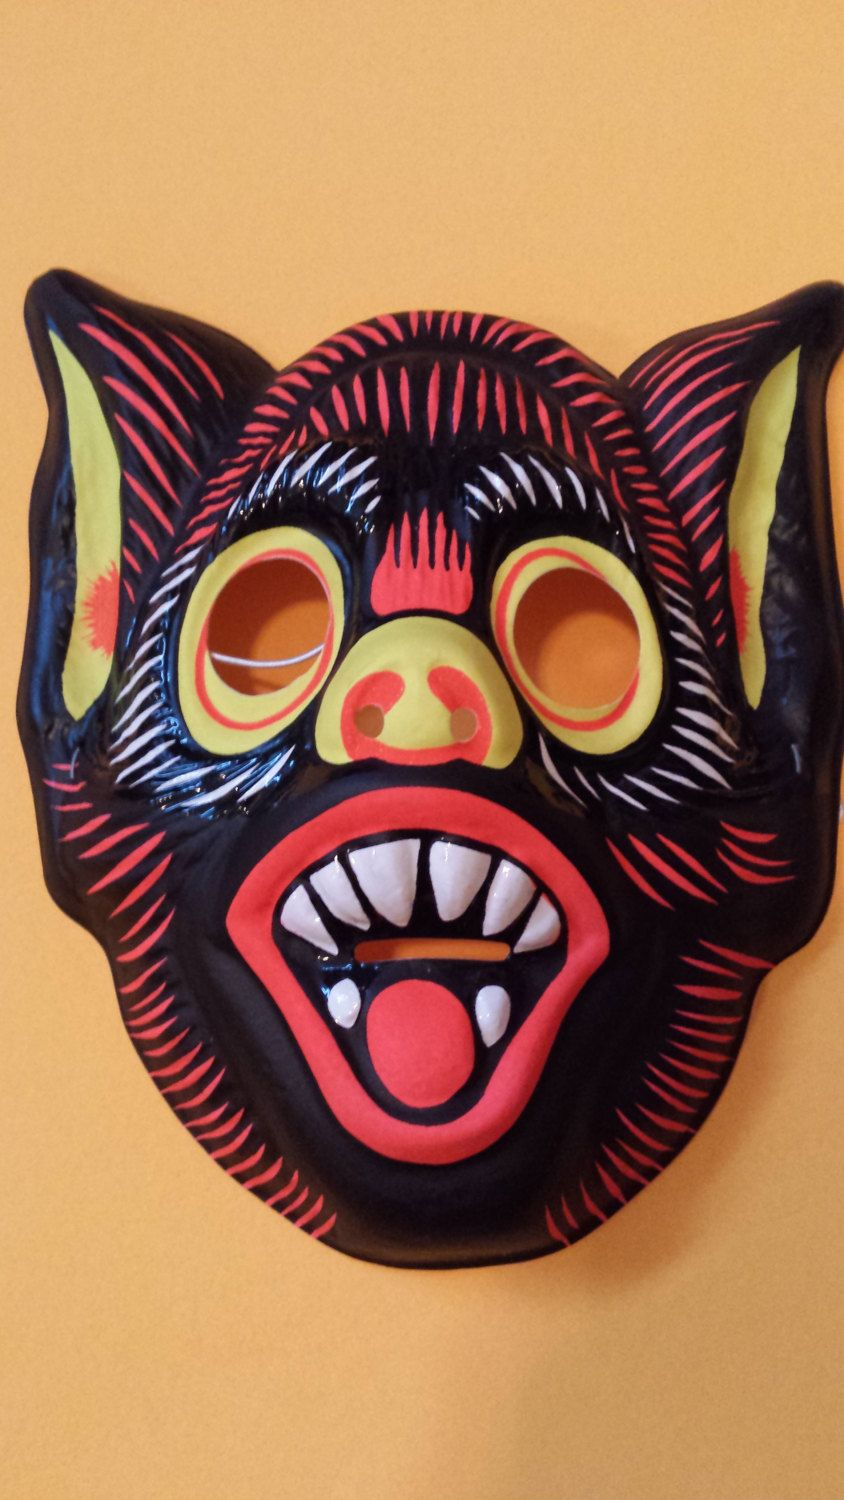 Vintage Witch Plastic Halloween Mask - we wore these kind of masks ...